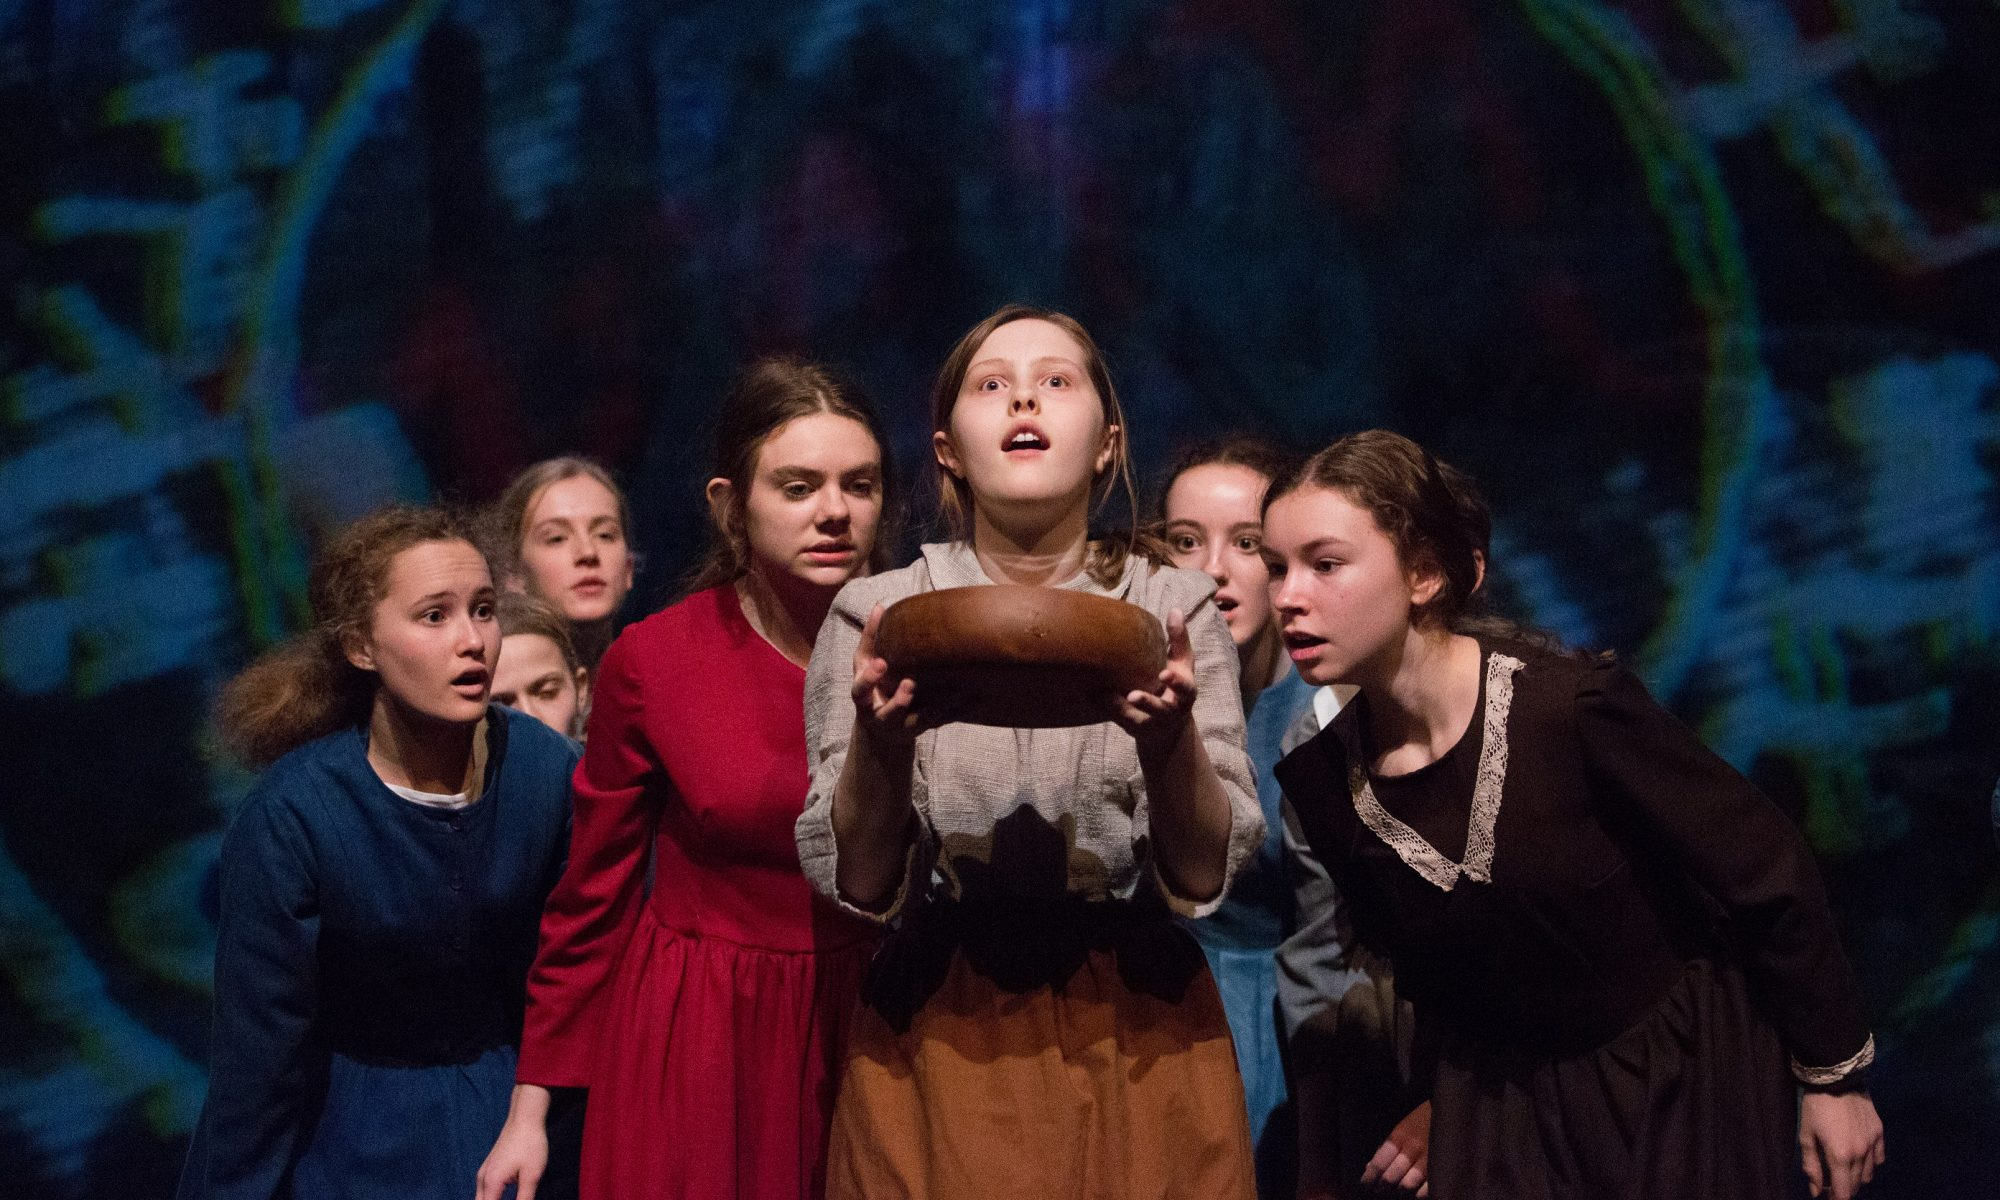 Pupils from St Catherine's, Guildford in a production of The Crucible